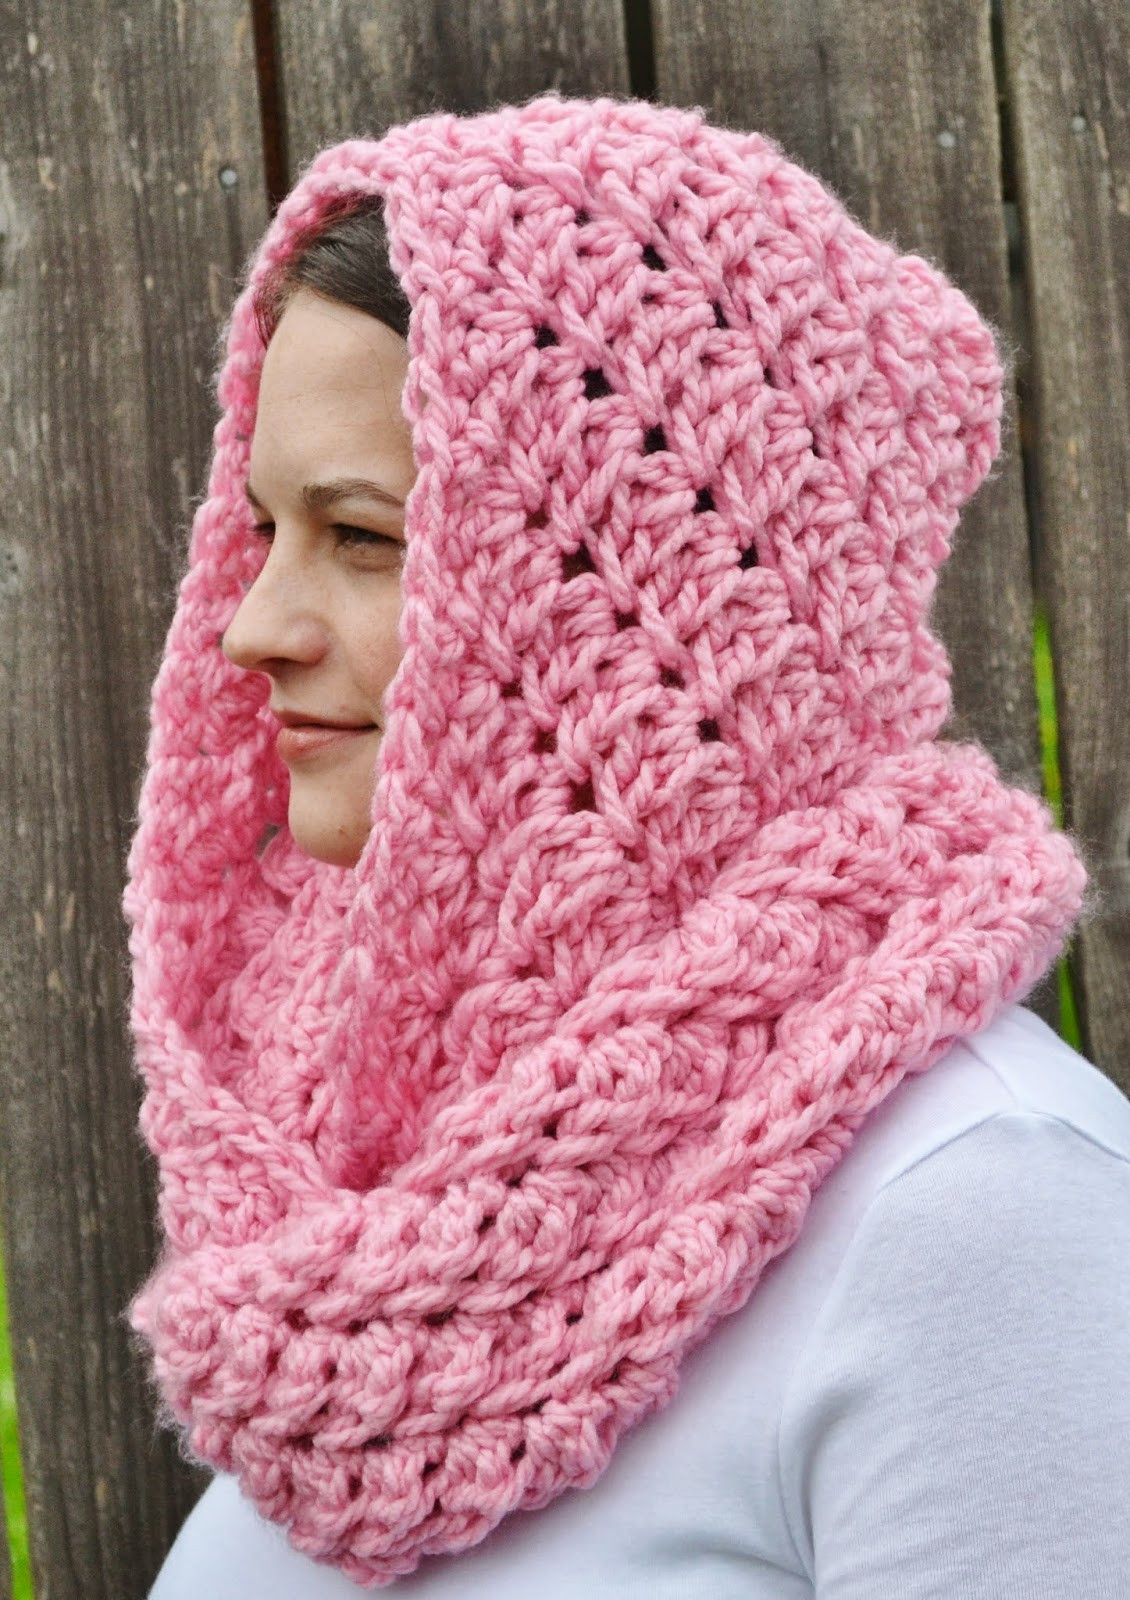 Keep Yourself Cozy This Winter With These 22 Crocheted